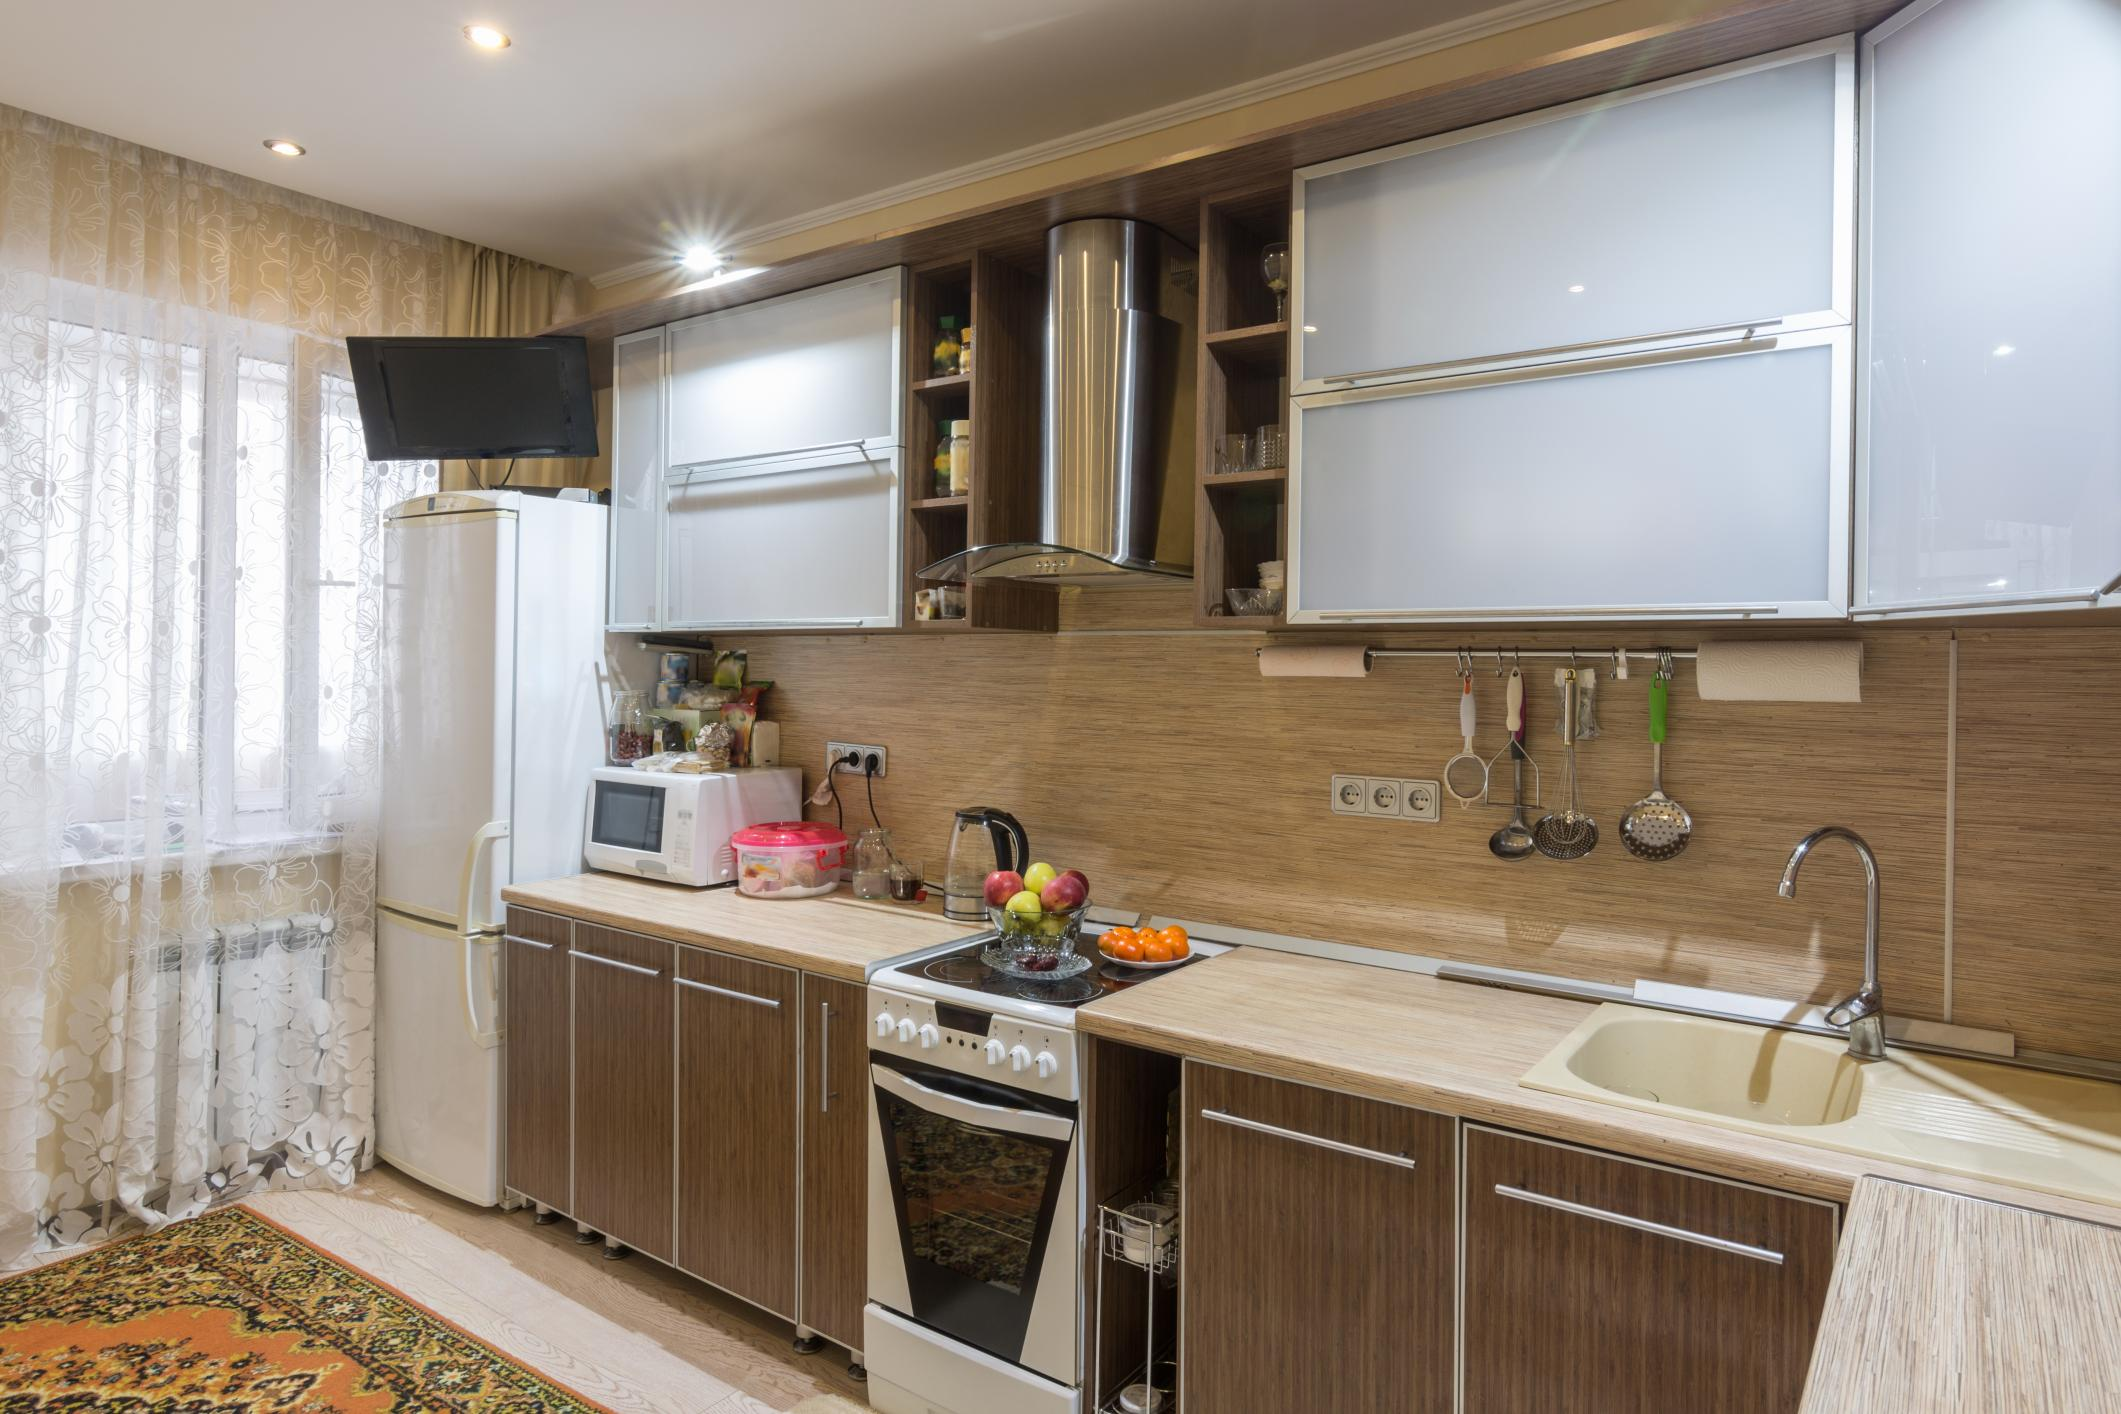 Revitalize your kitchen cabinets in Edmonton AB